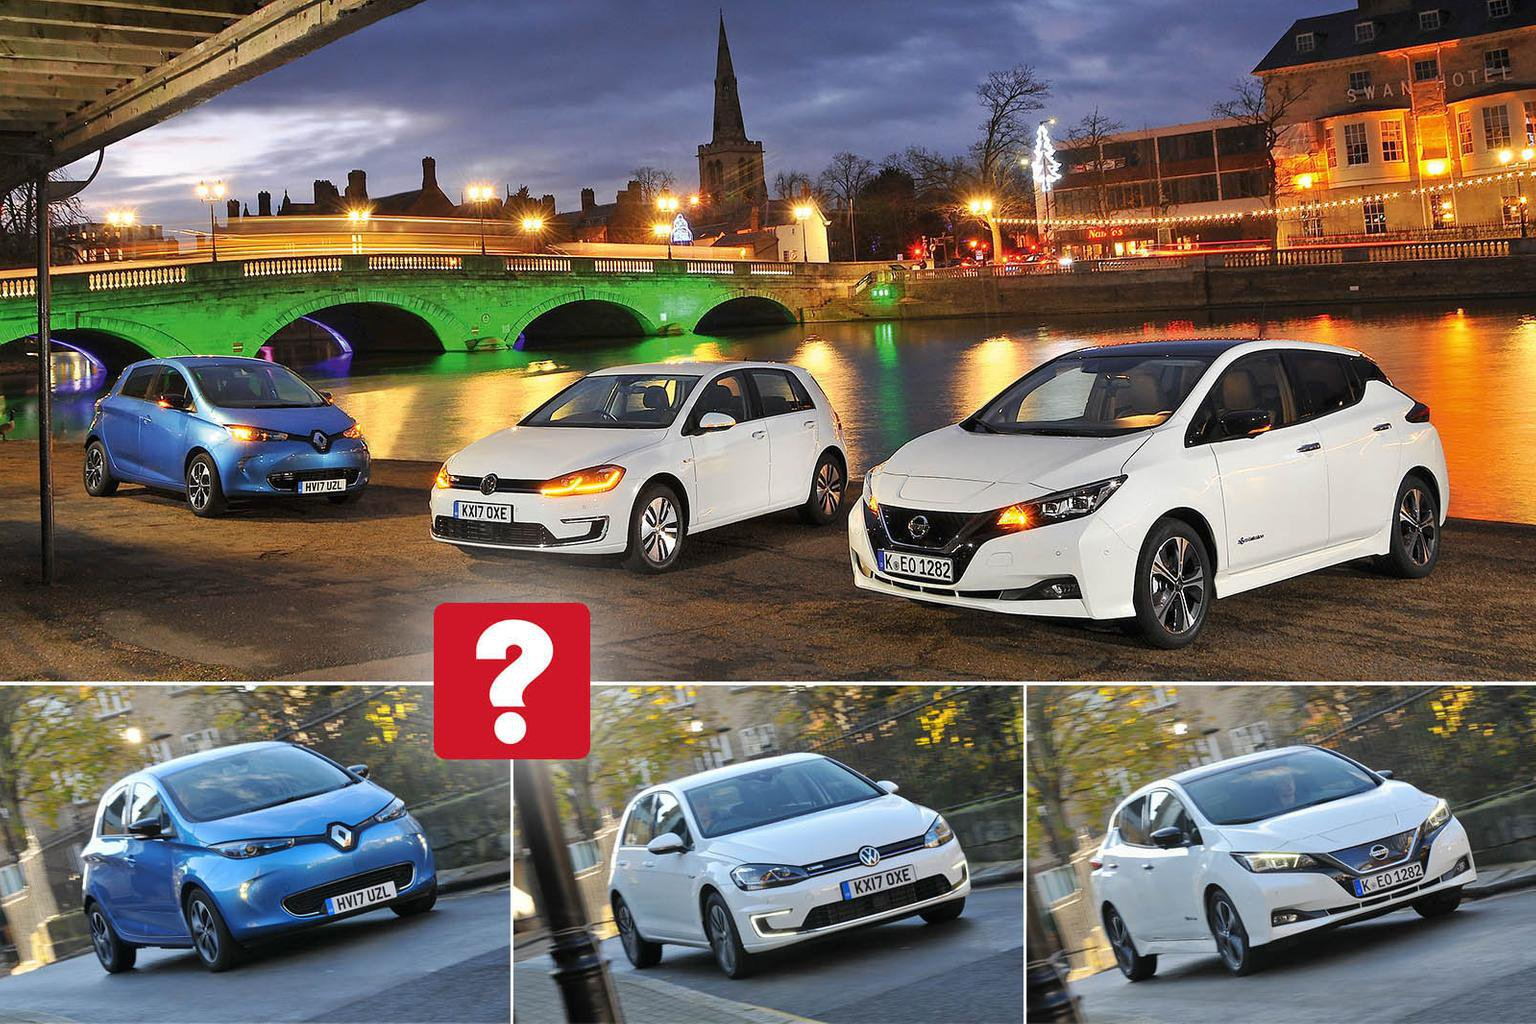 New Nissan Leaf vs Renault Zoe vs Volkswagen e-Golf